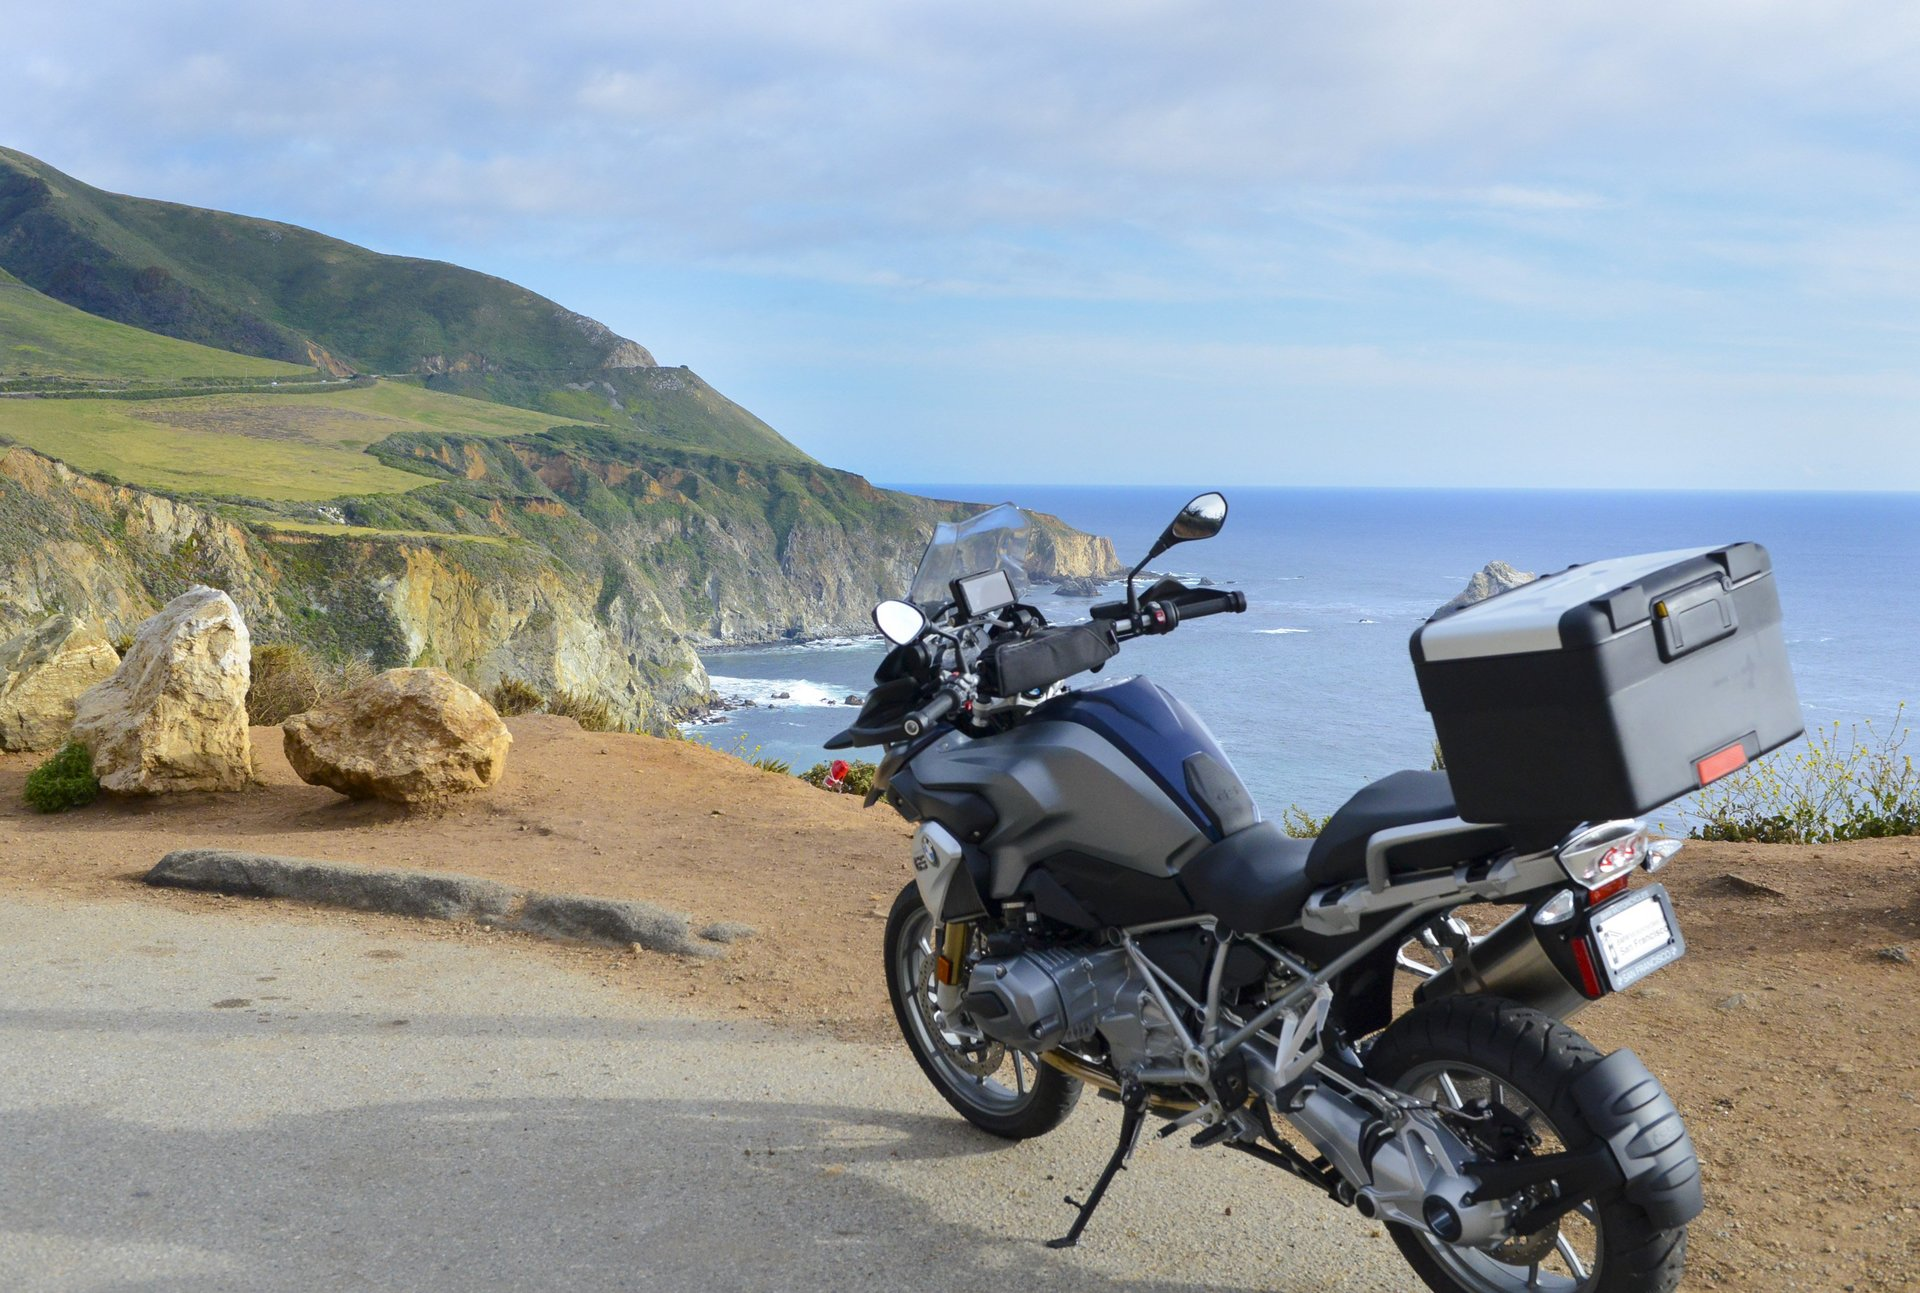 Motorcycle Rental in San Franciso showcase bike with breathtaking landscape background